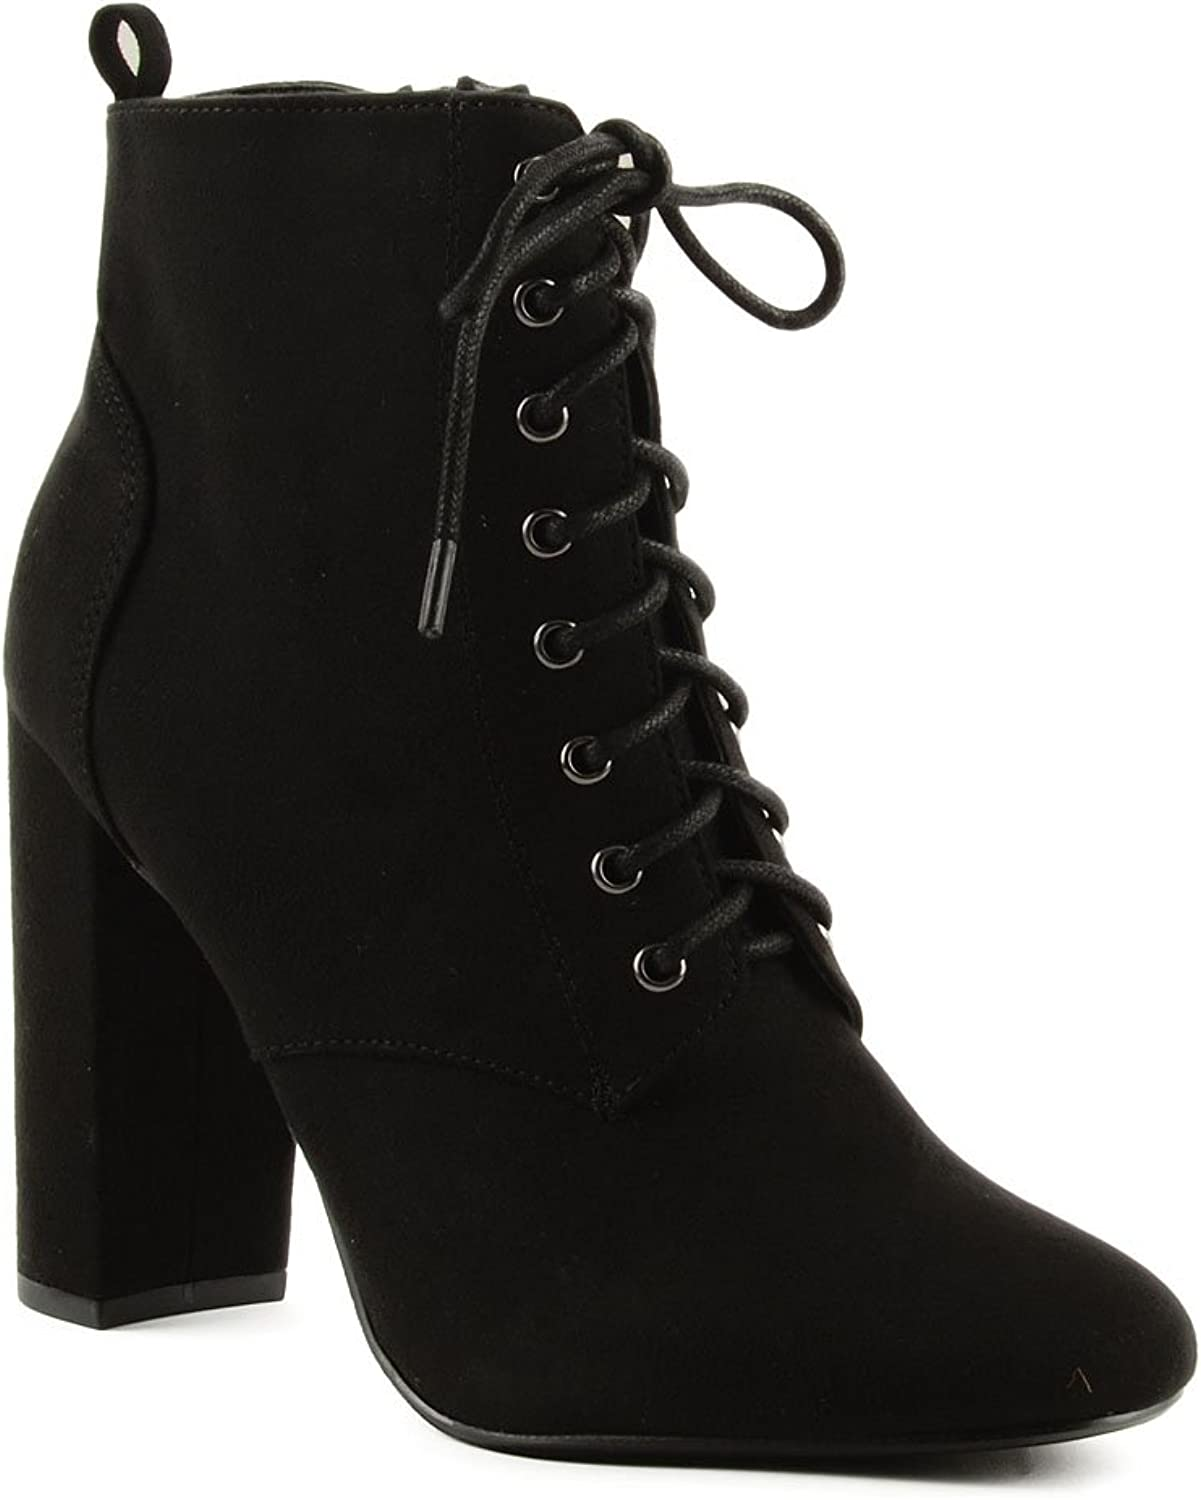 Delicious Women's Eminent Almond Toe Lace Up High Heel Ankle Boots